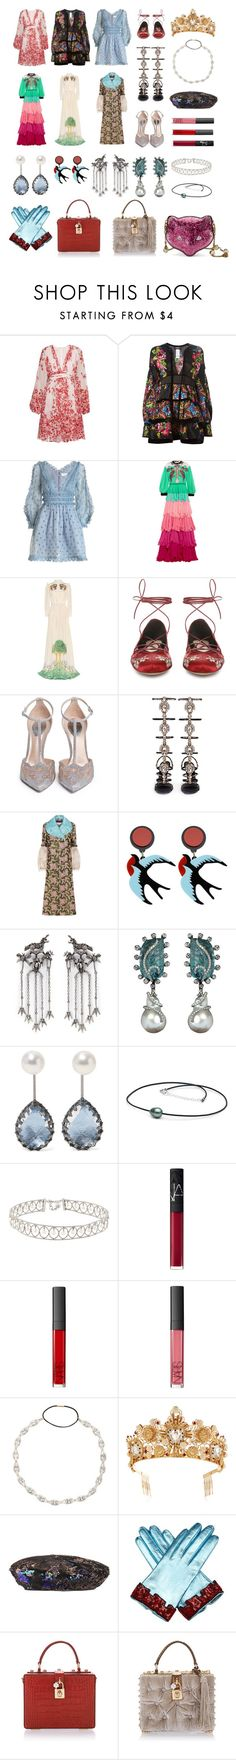 """Untitled #2396"" by claireyim ❤ liked on Polyvore featuring Giambattista Valli, Dsquared2, Zimmermann, Gucci, Etro, Rene, René Caovilla, Valentino, Annoushka and Larkspur & Hawk"